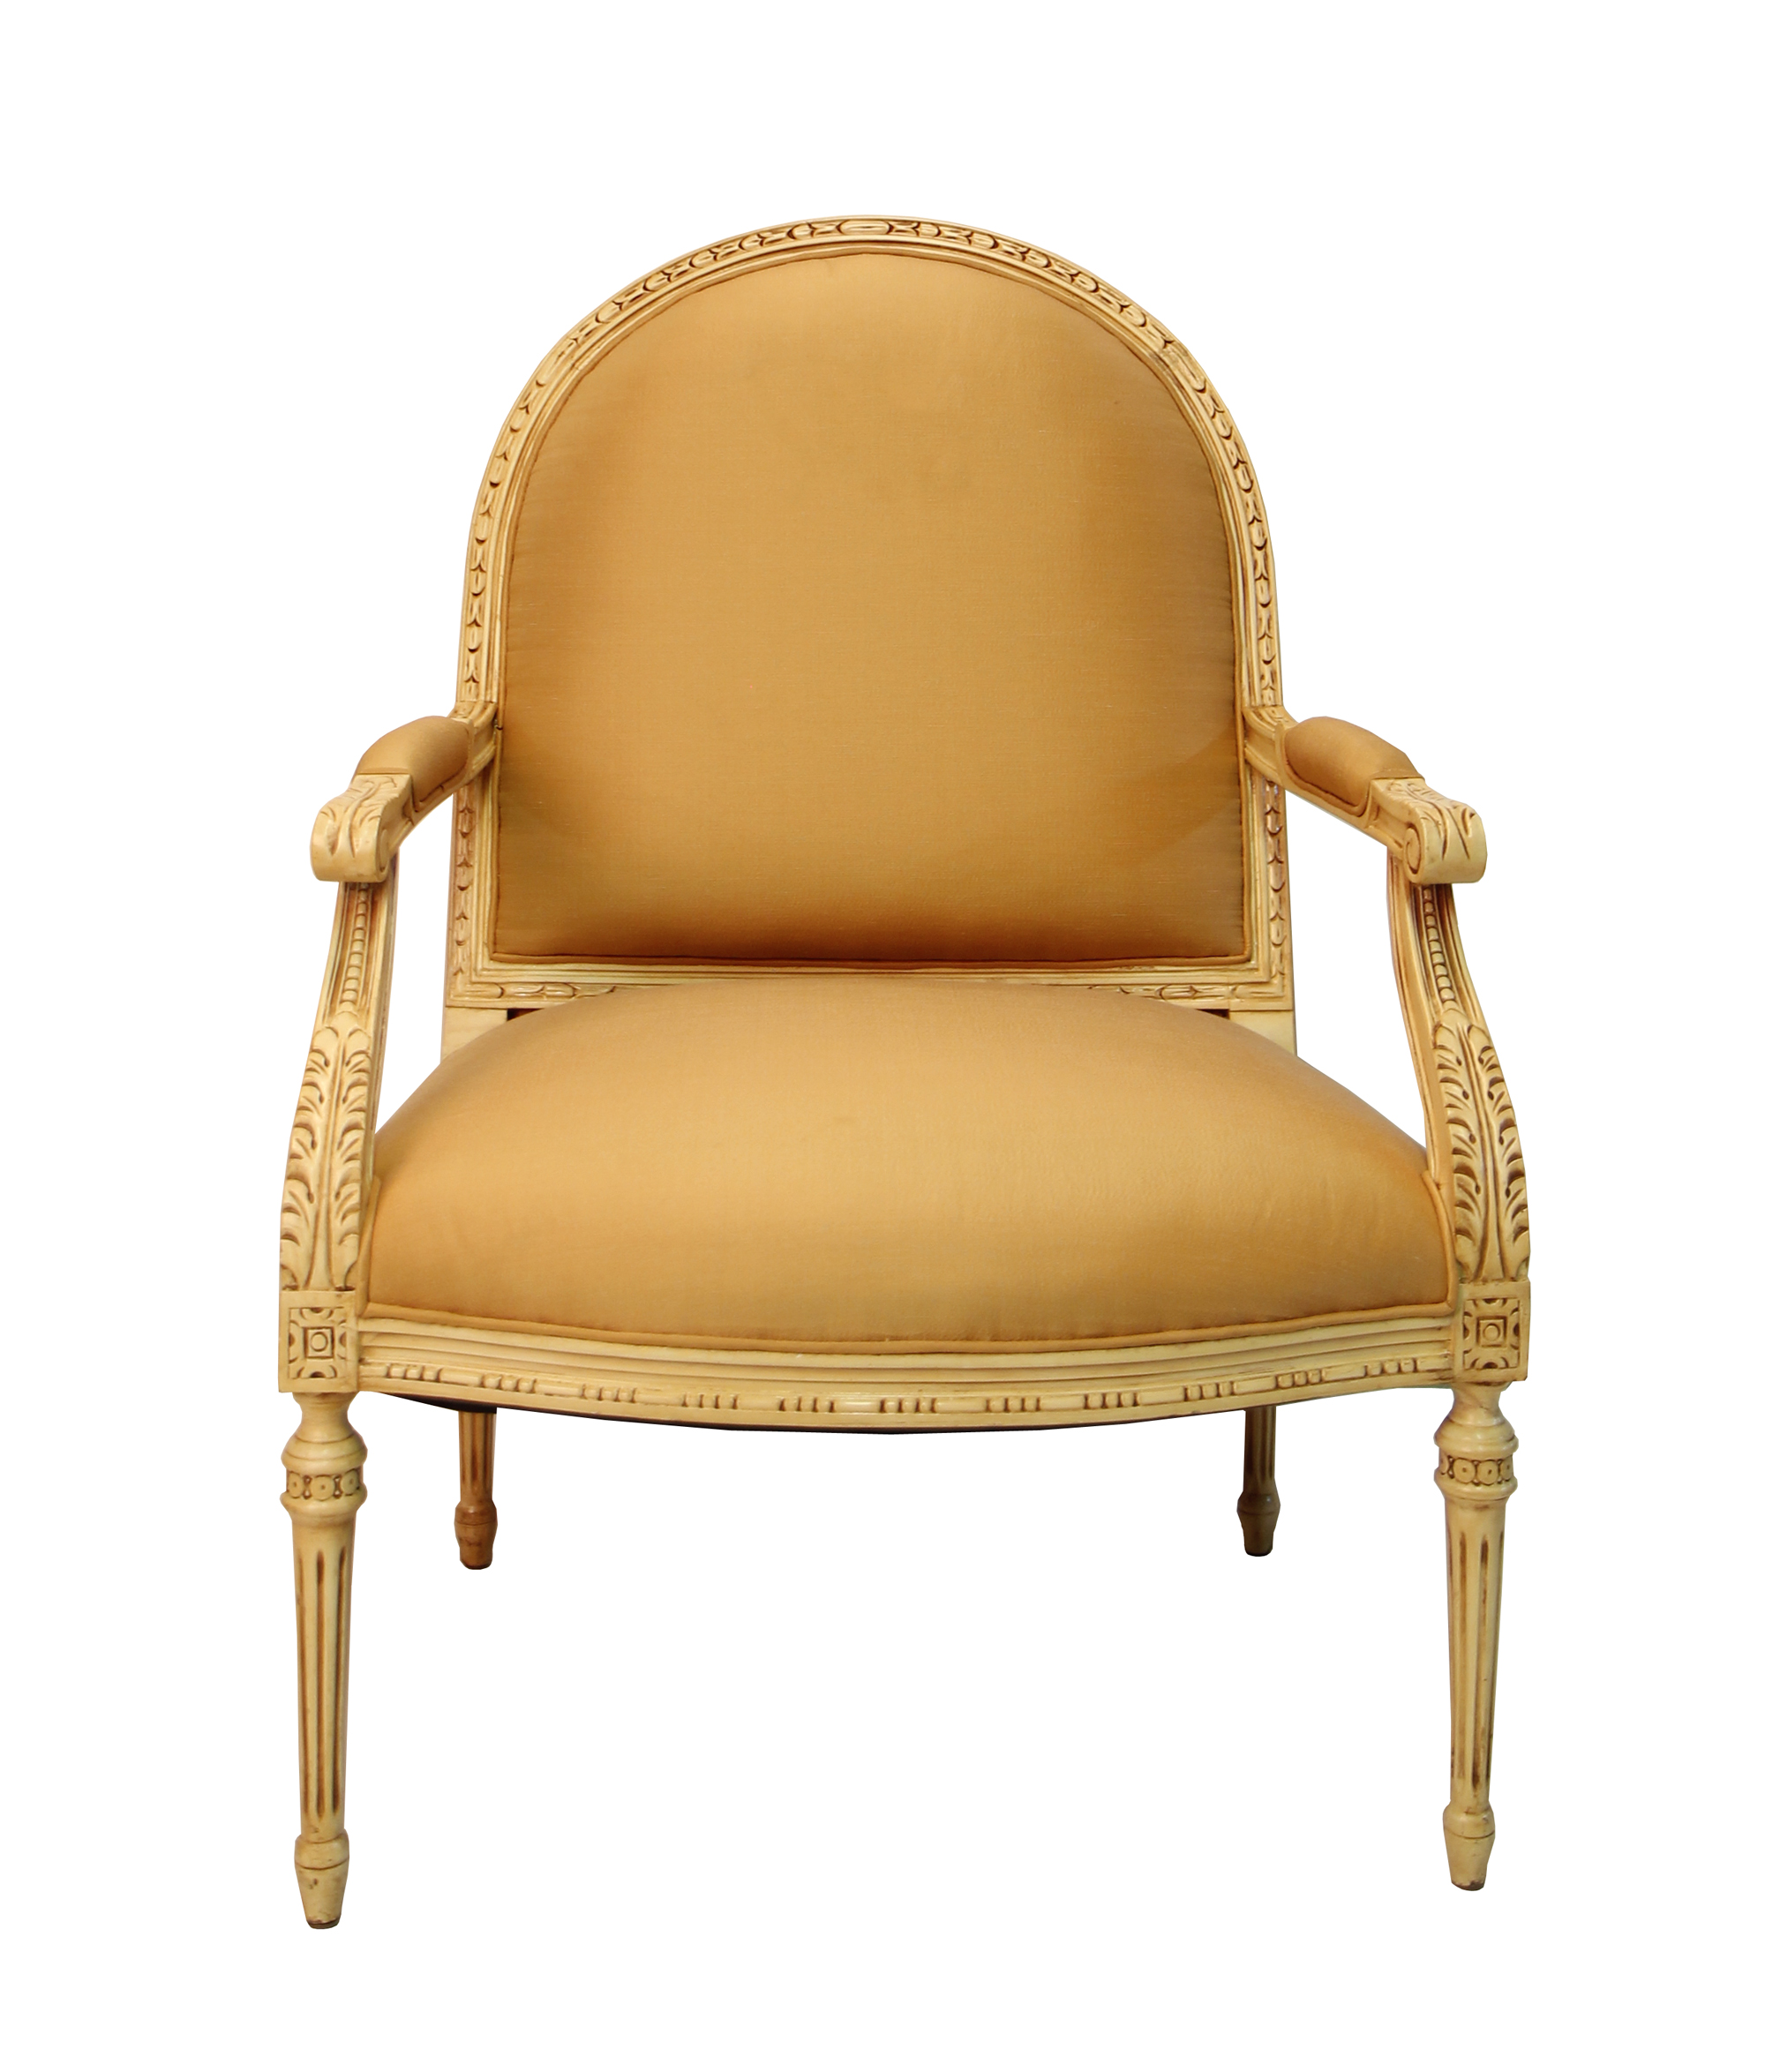 cream colored chairs colored accent arm chair chairish 13590 | 88102a36 daa5 42f7 a115 fe6b92137dc1